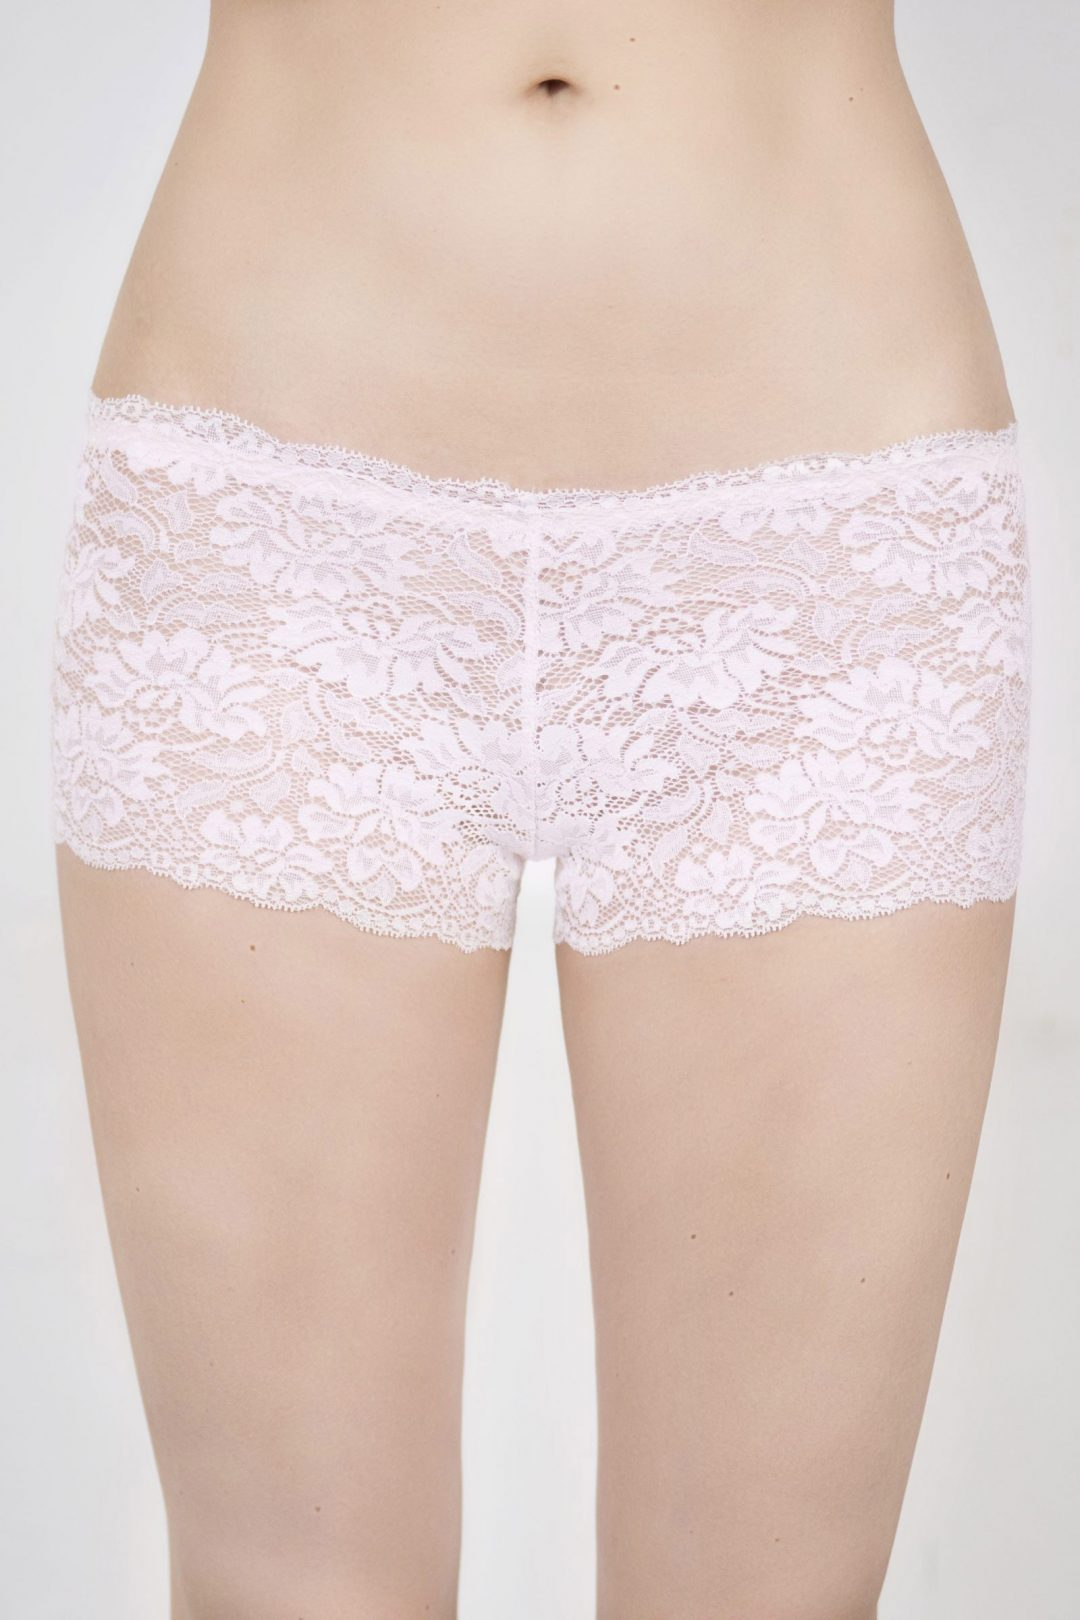 Pic of a beautiful cute & sexy pink lace ladies boyshorts | IDentity Lingerie UK